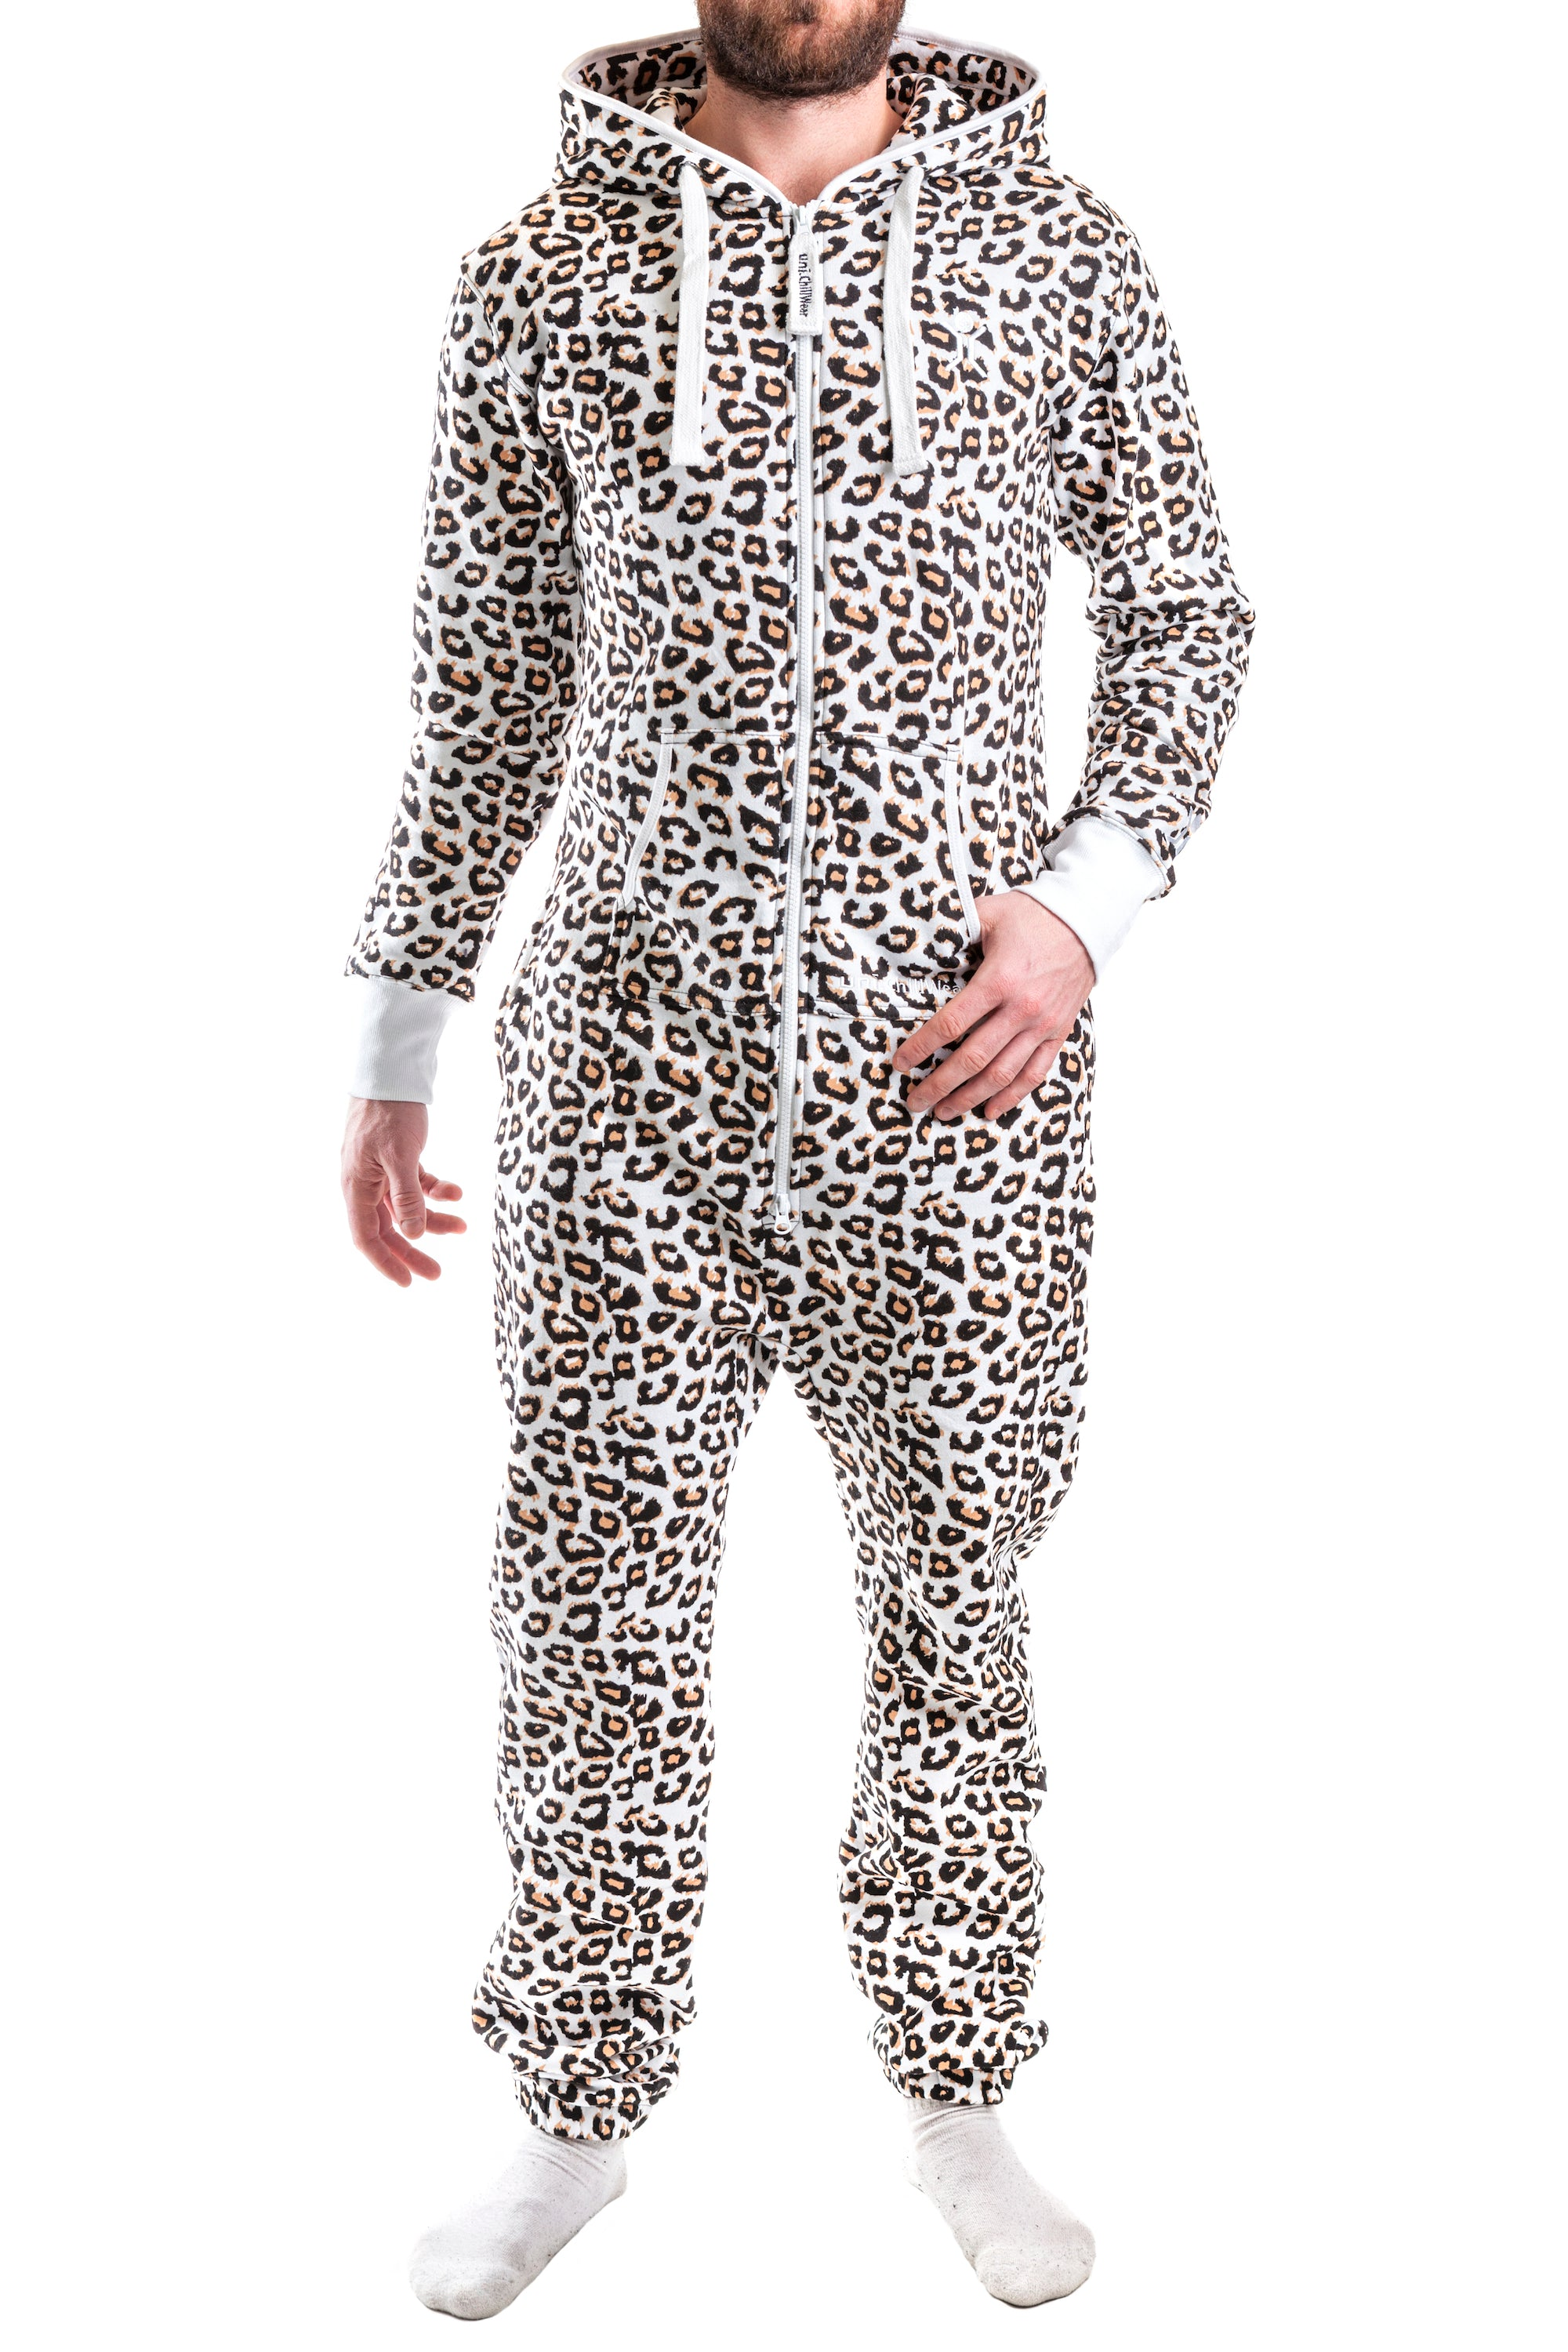 All Adult Pajamas, Onesies and Jumpsuits. Plush Adult Footed Pajamas with Hood in Leopard Print. $$ Camouflage Micro-Polar Fleece Adult Footed Pajamas in Green and Brown. $$ Jersey Knit Adult Footed Pajamas in Red Jersey Knit Adult Footed Pajamas in Navy Blue Onesies for Men and Women. $$ Jersey Knit.